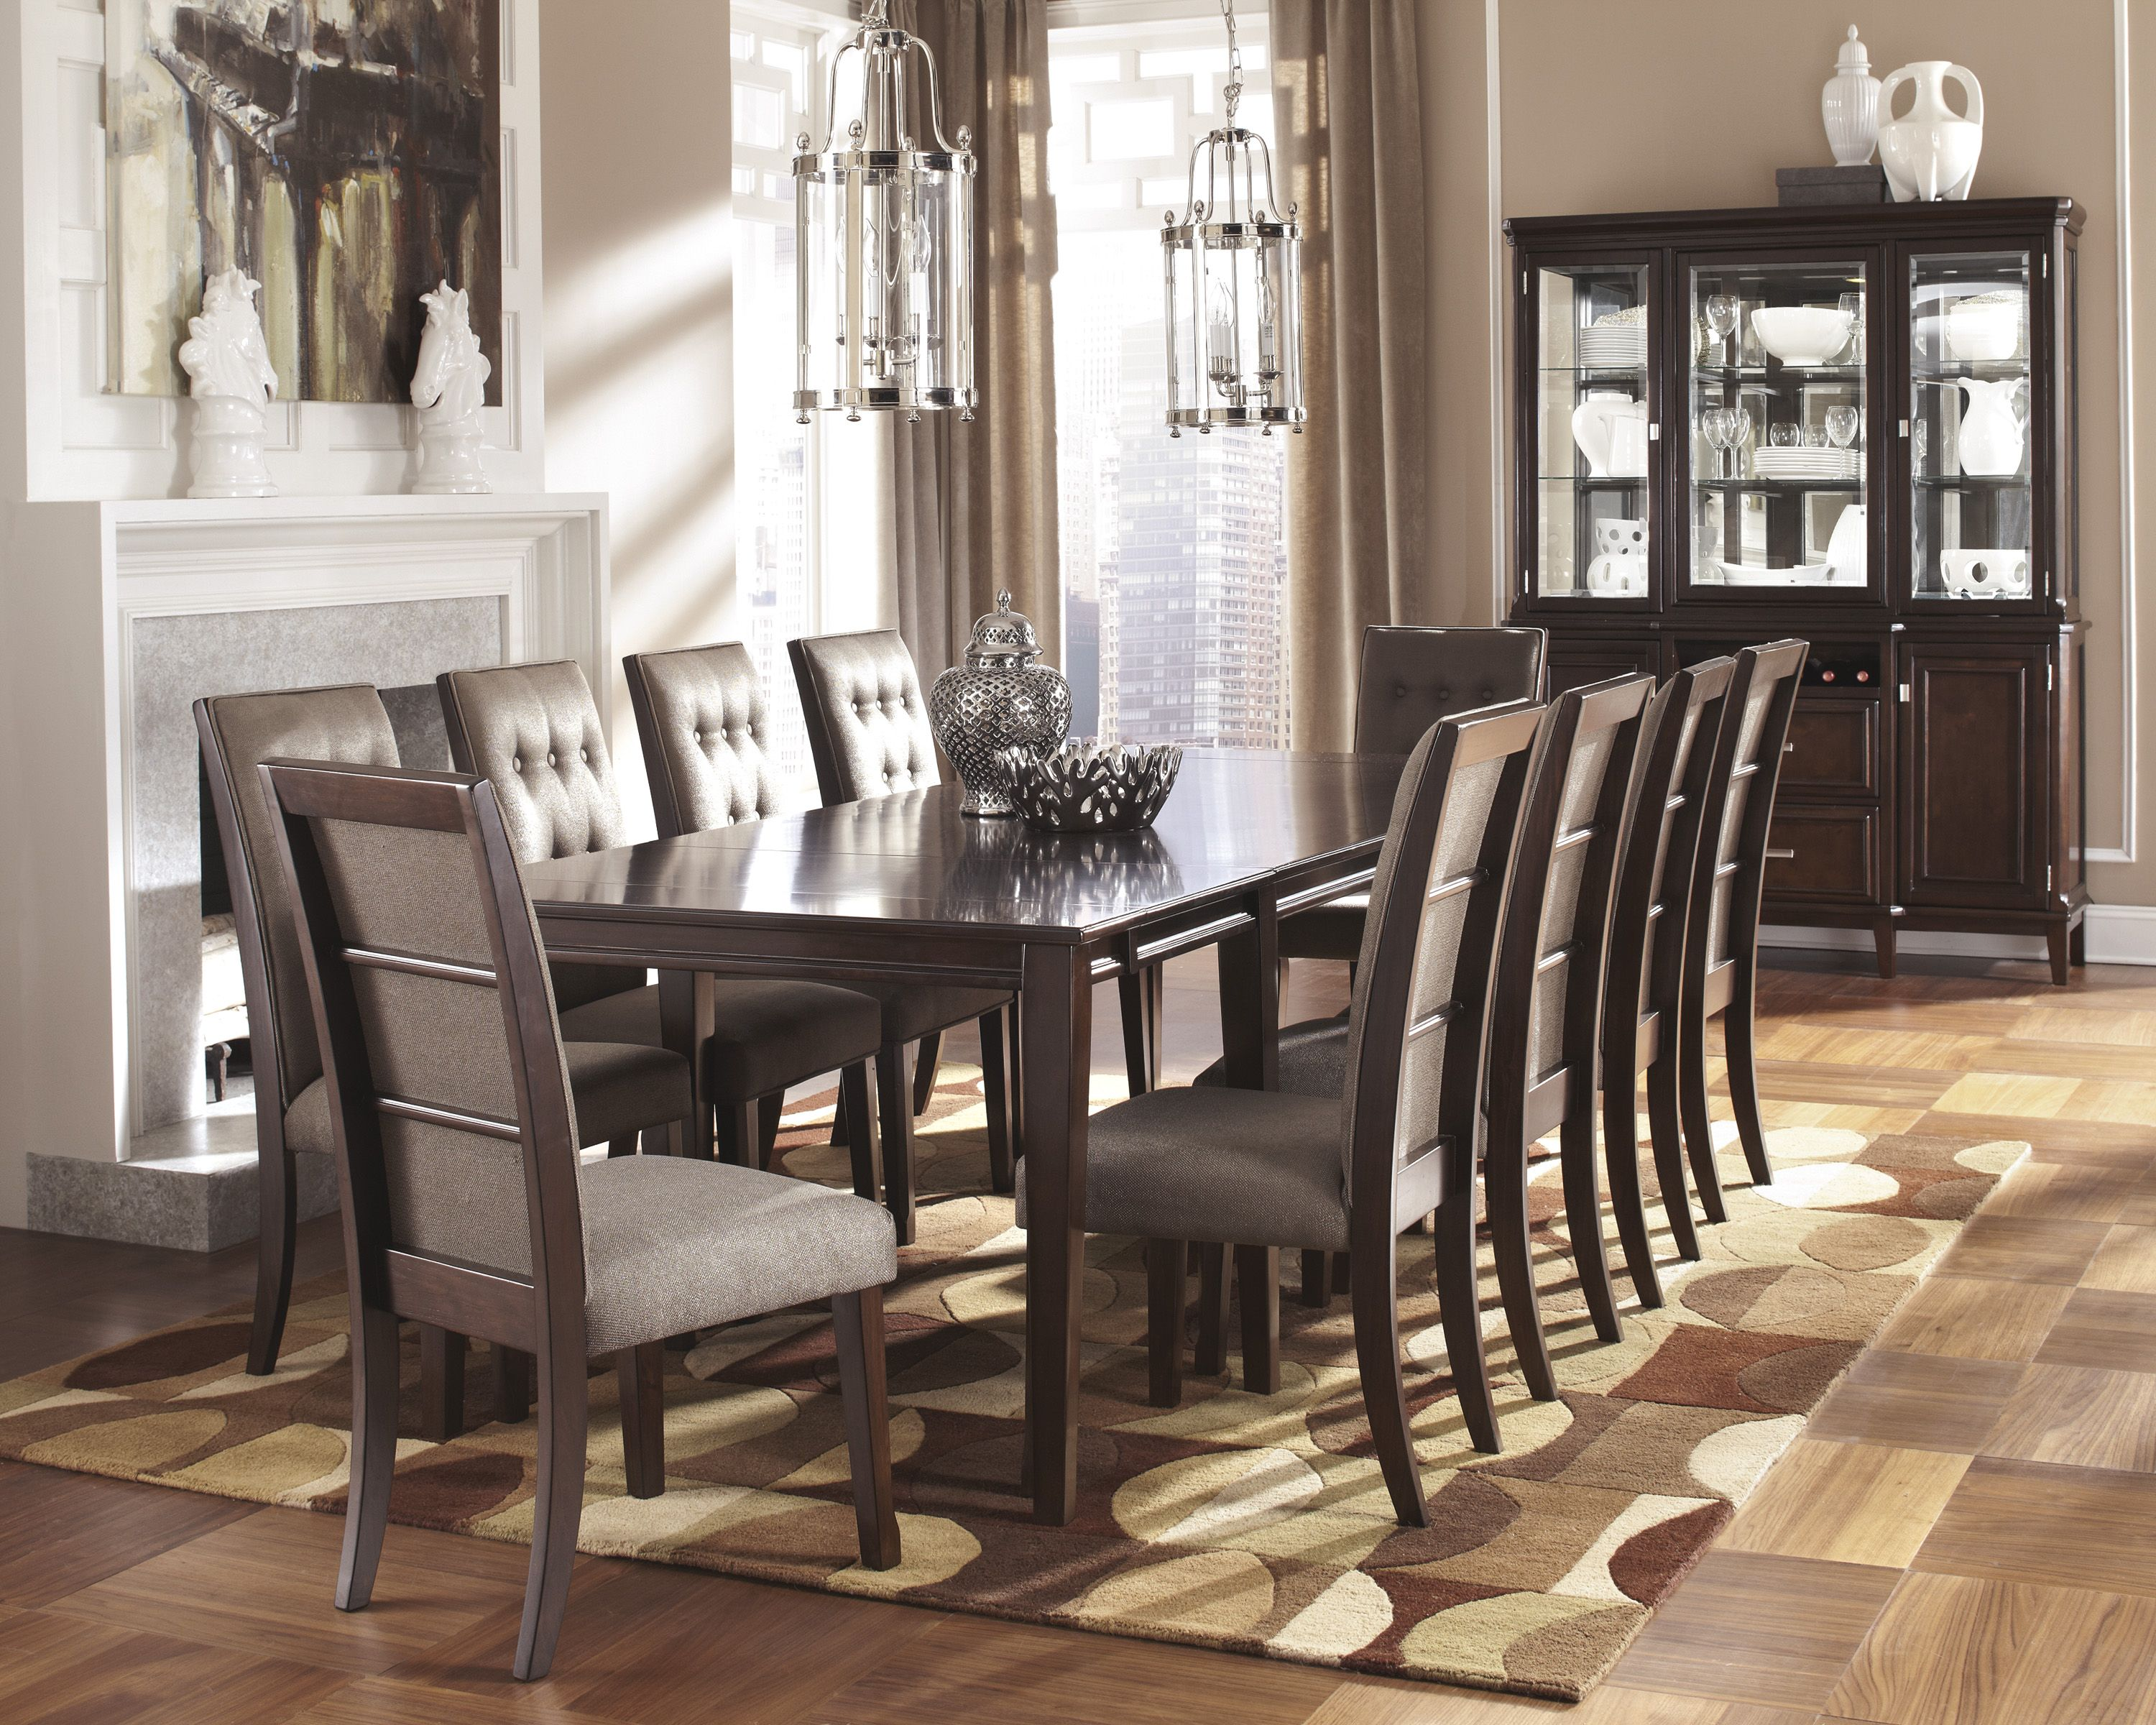 Unusual Dining Sets Unique Dining Room From Midas Pin Repin Diningroom